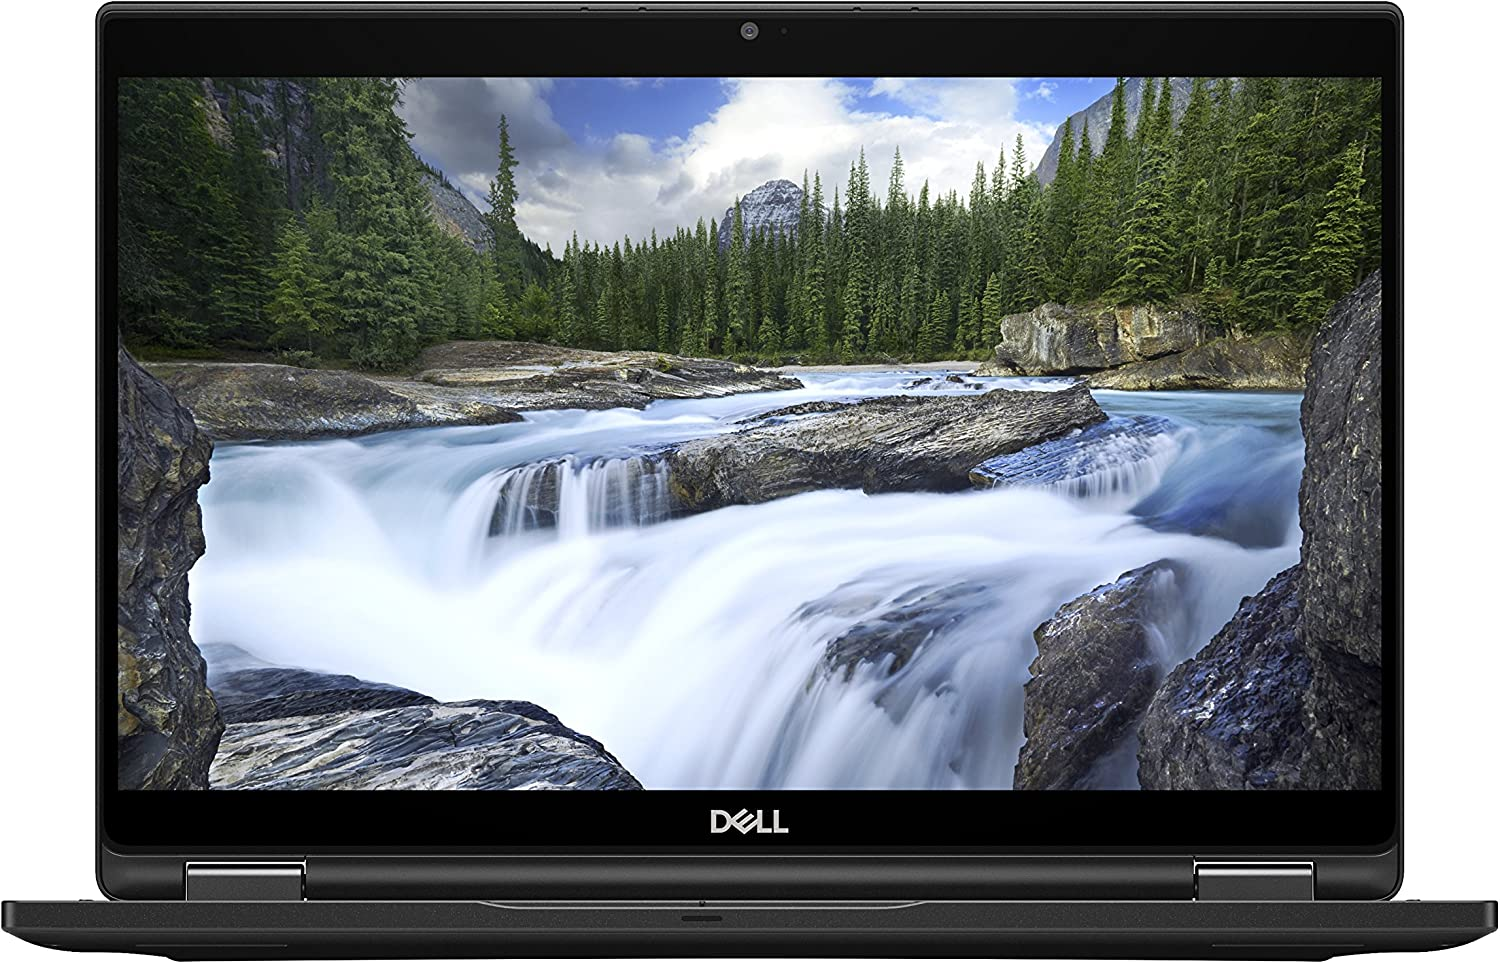 "Dell N6PNV Latitude 7390 13.3"" 1920 X 1080 Touchscreen LCD 2 in 1 Laptop with Intel Core i5-8350U Quad-Core 1.7 GHz, 8GB LPDDR3, 256GB SSD"